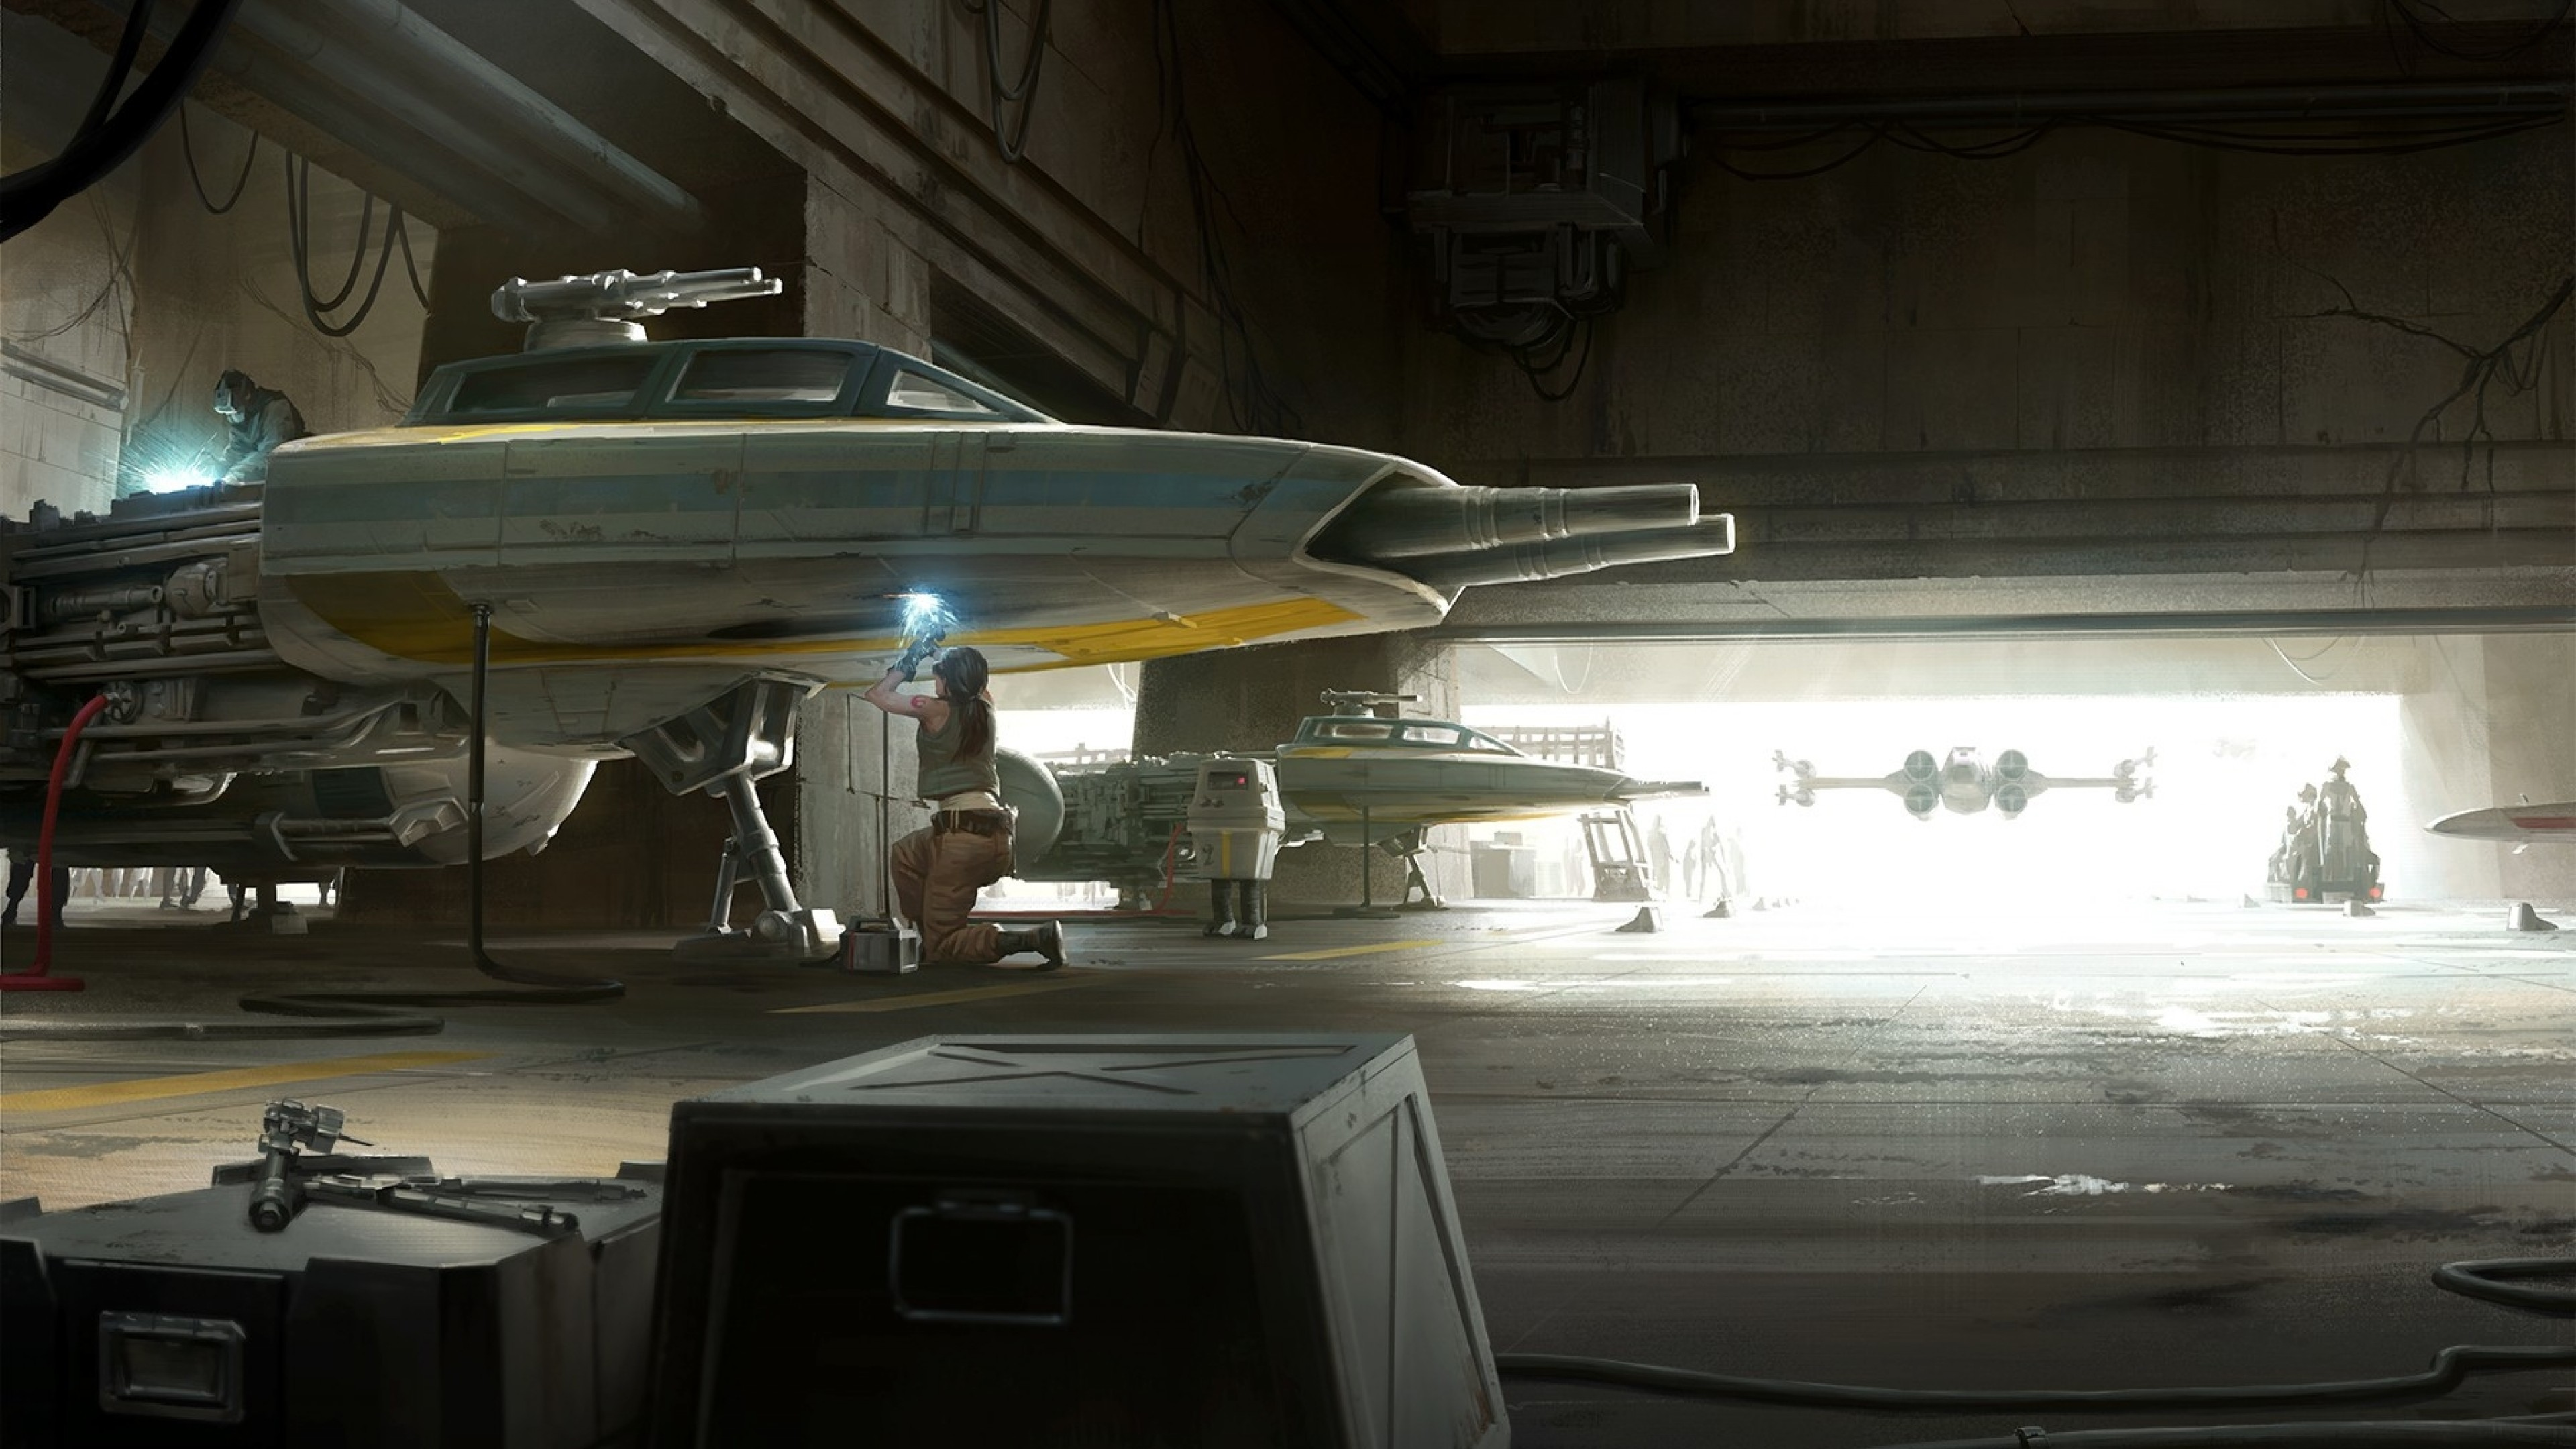 3840x2160 Spaceship, Y-wing, X-wing, Star Wars, Sci-fi